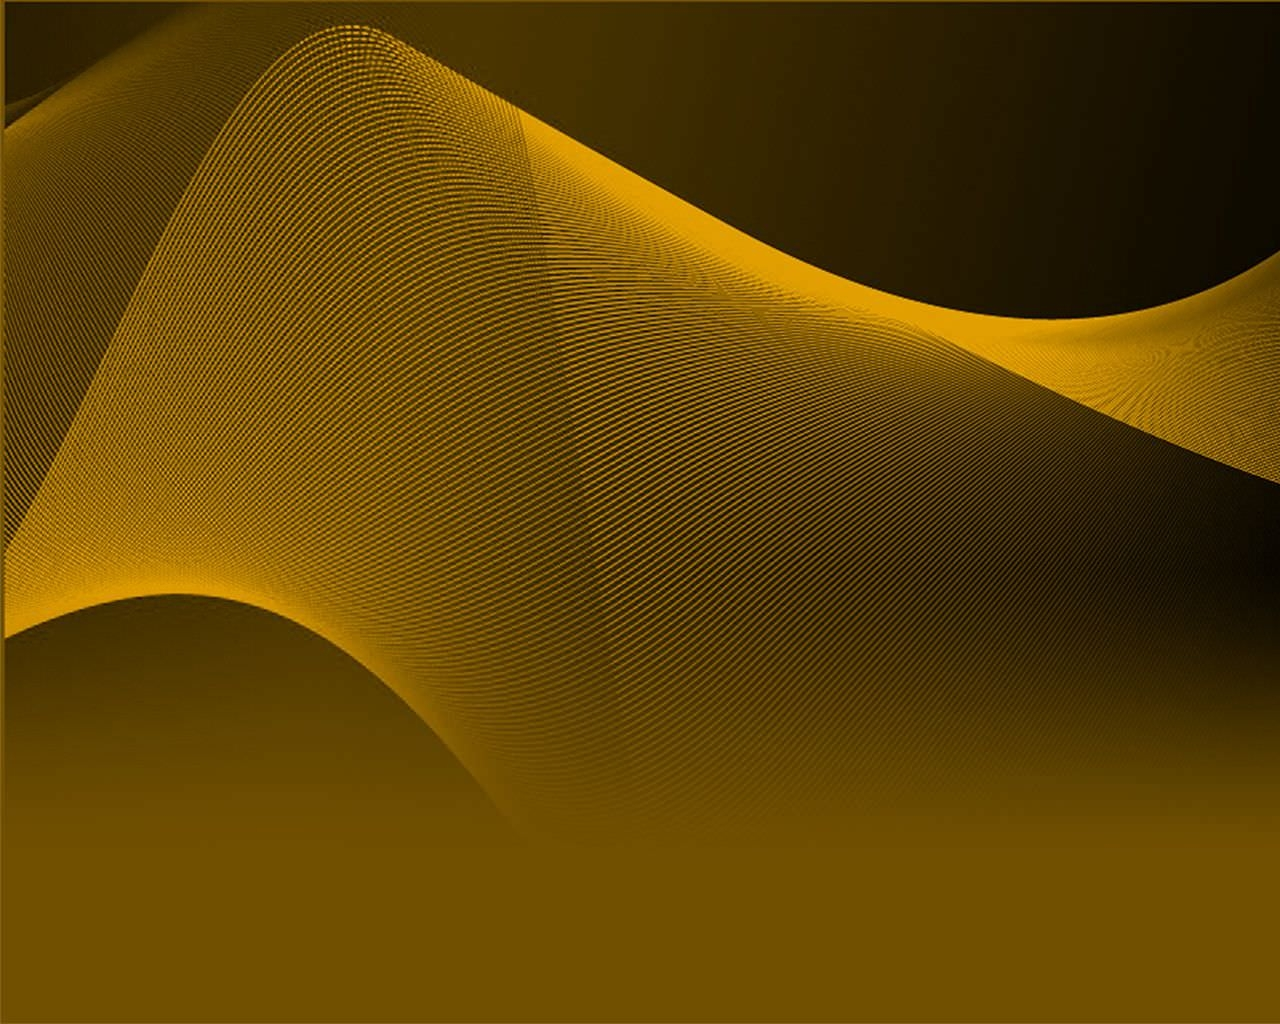 Golden Wavy Abstract Wallpaper